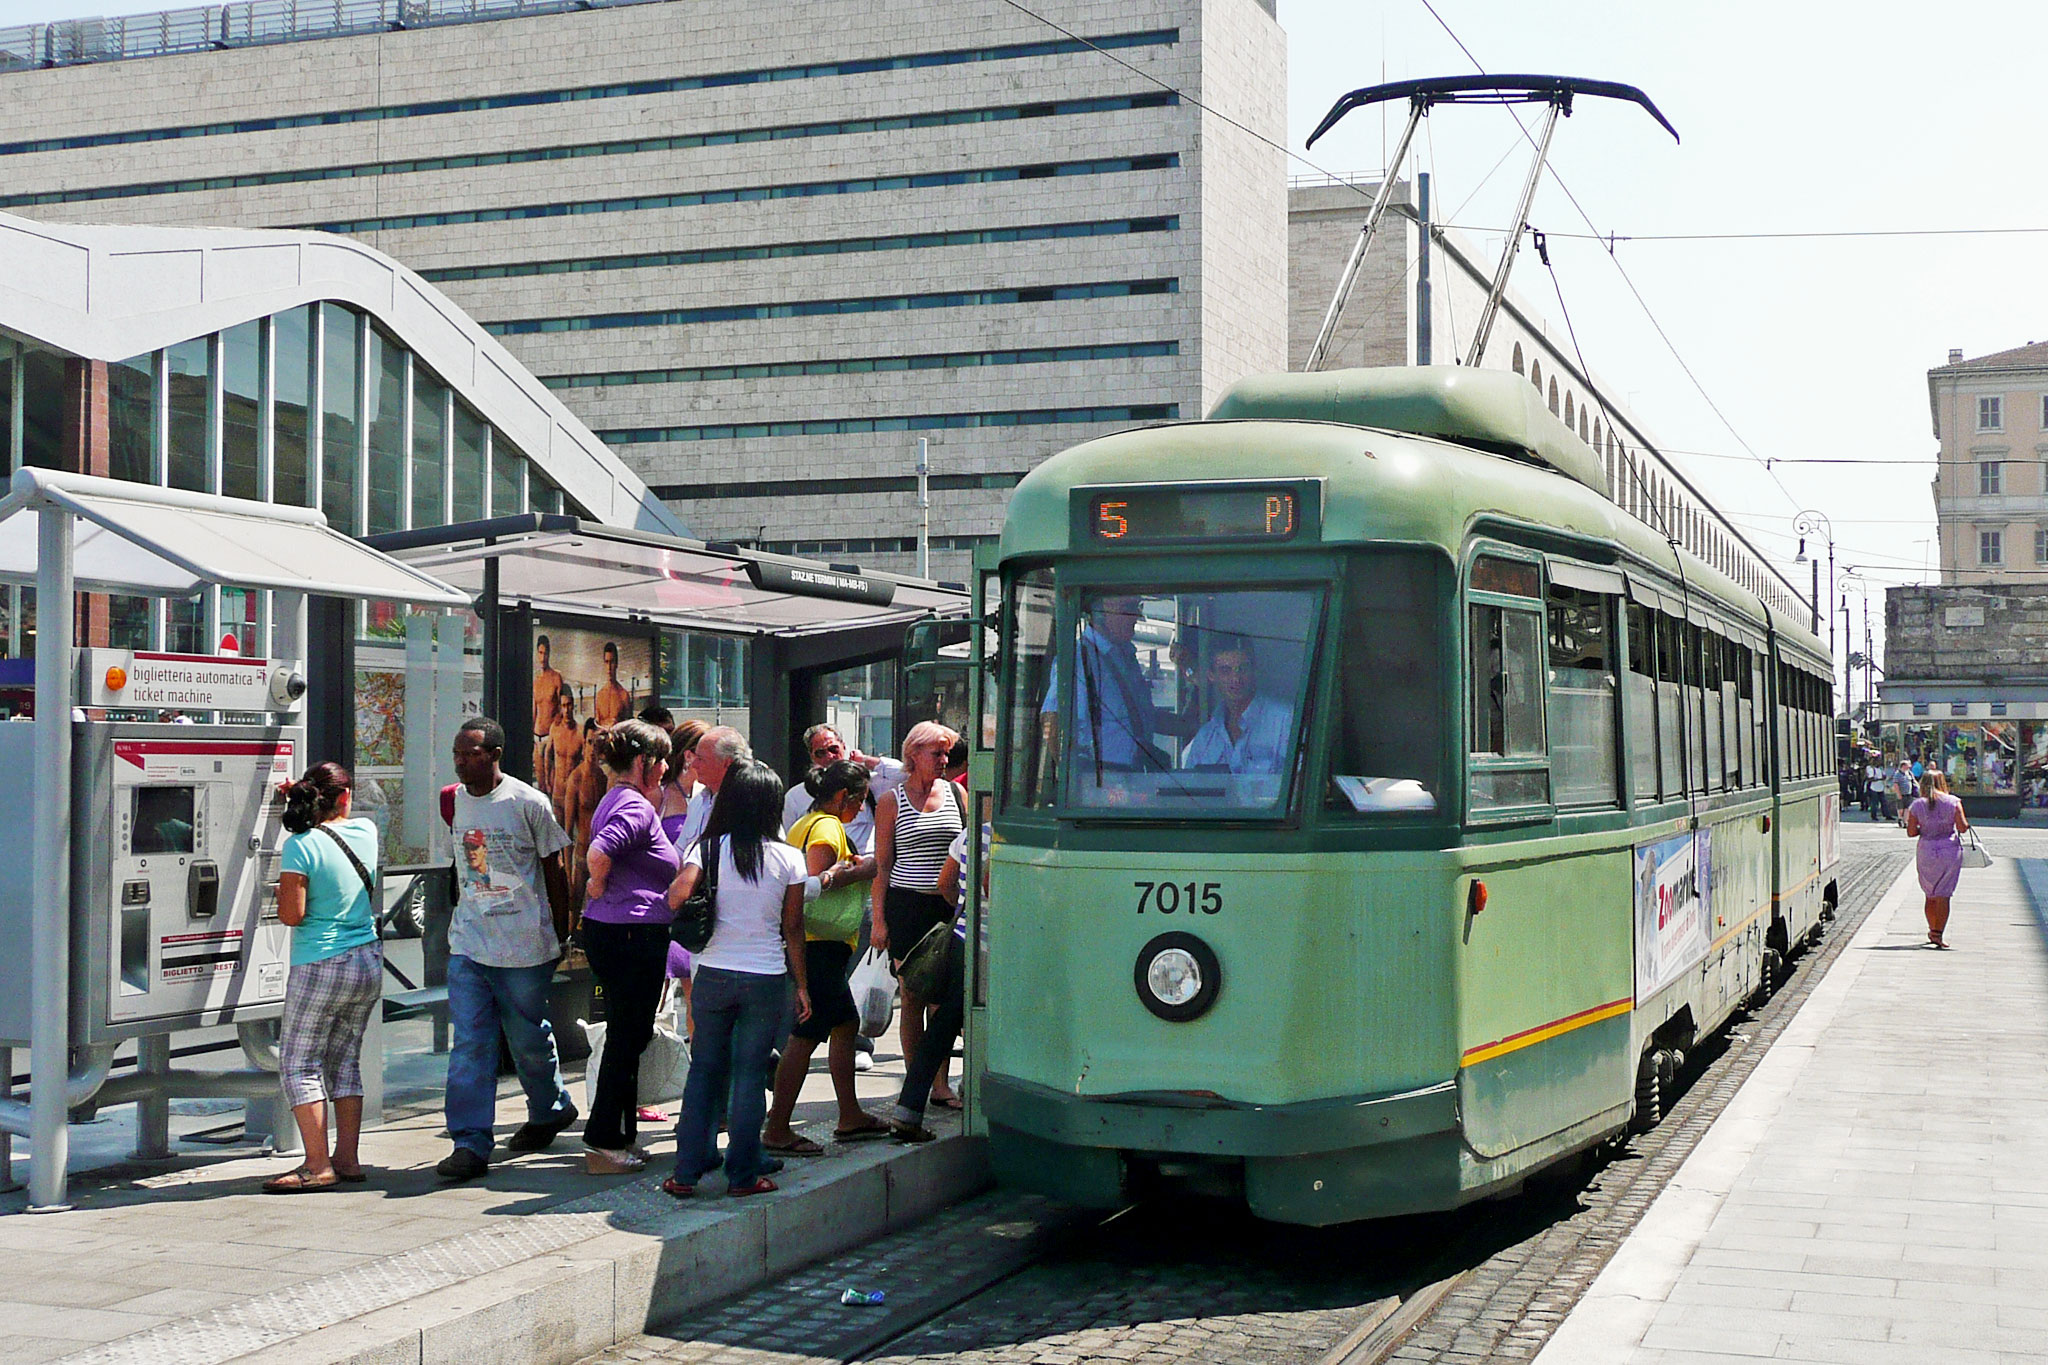 Figure 8: 7000 Series model tram has 6 axles with two railway carriages (railroad cars) ‍‍connected. This is one of the ‍‍earliest model ‍‍delivered between 1948-49 under ATAC. Line 5 and 14 still have this tram model.